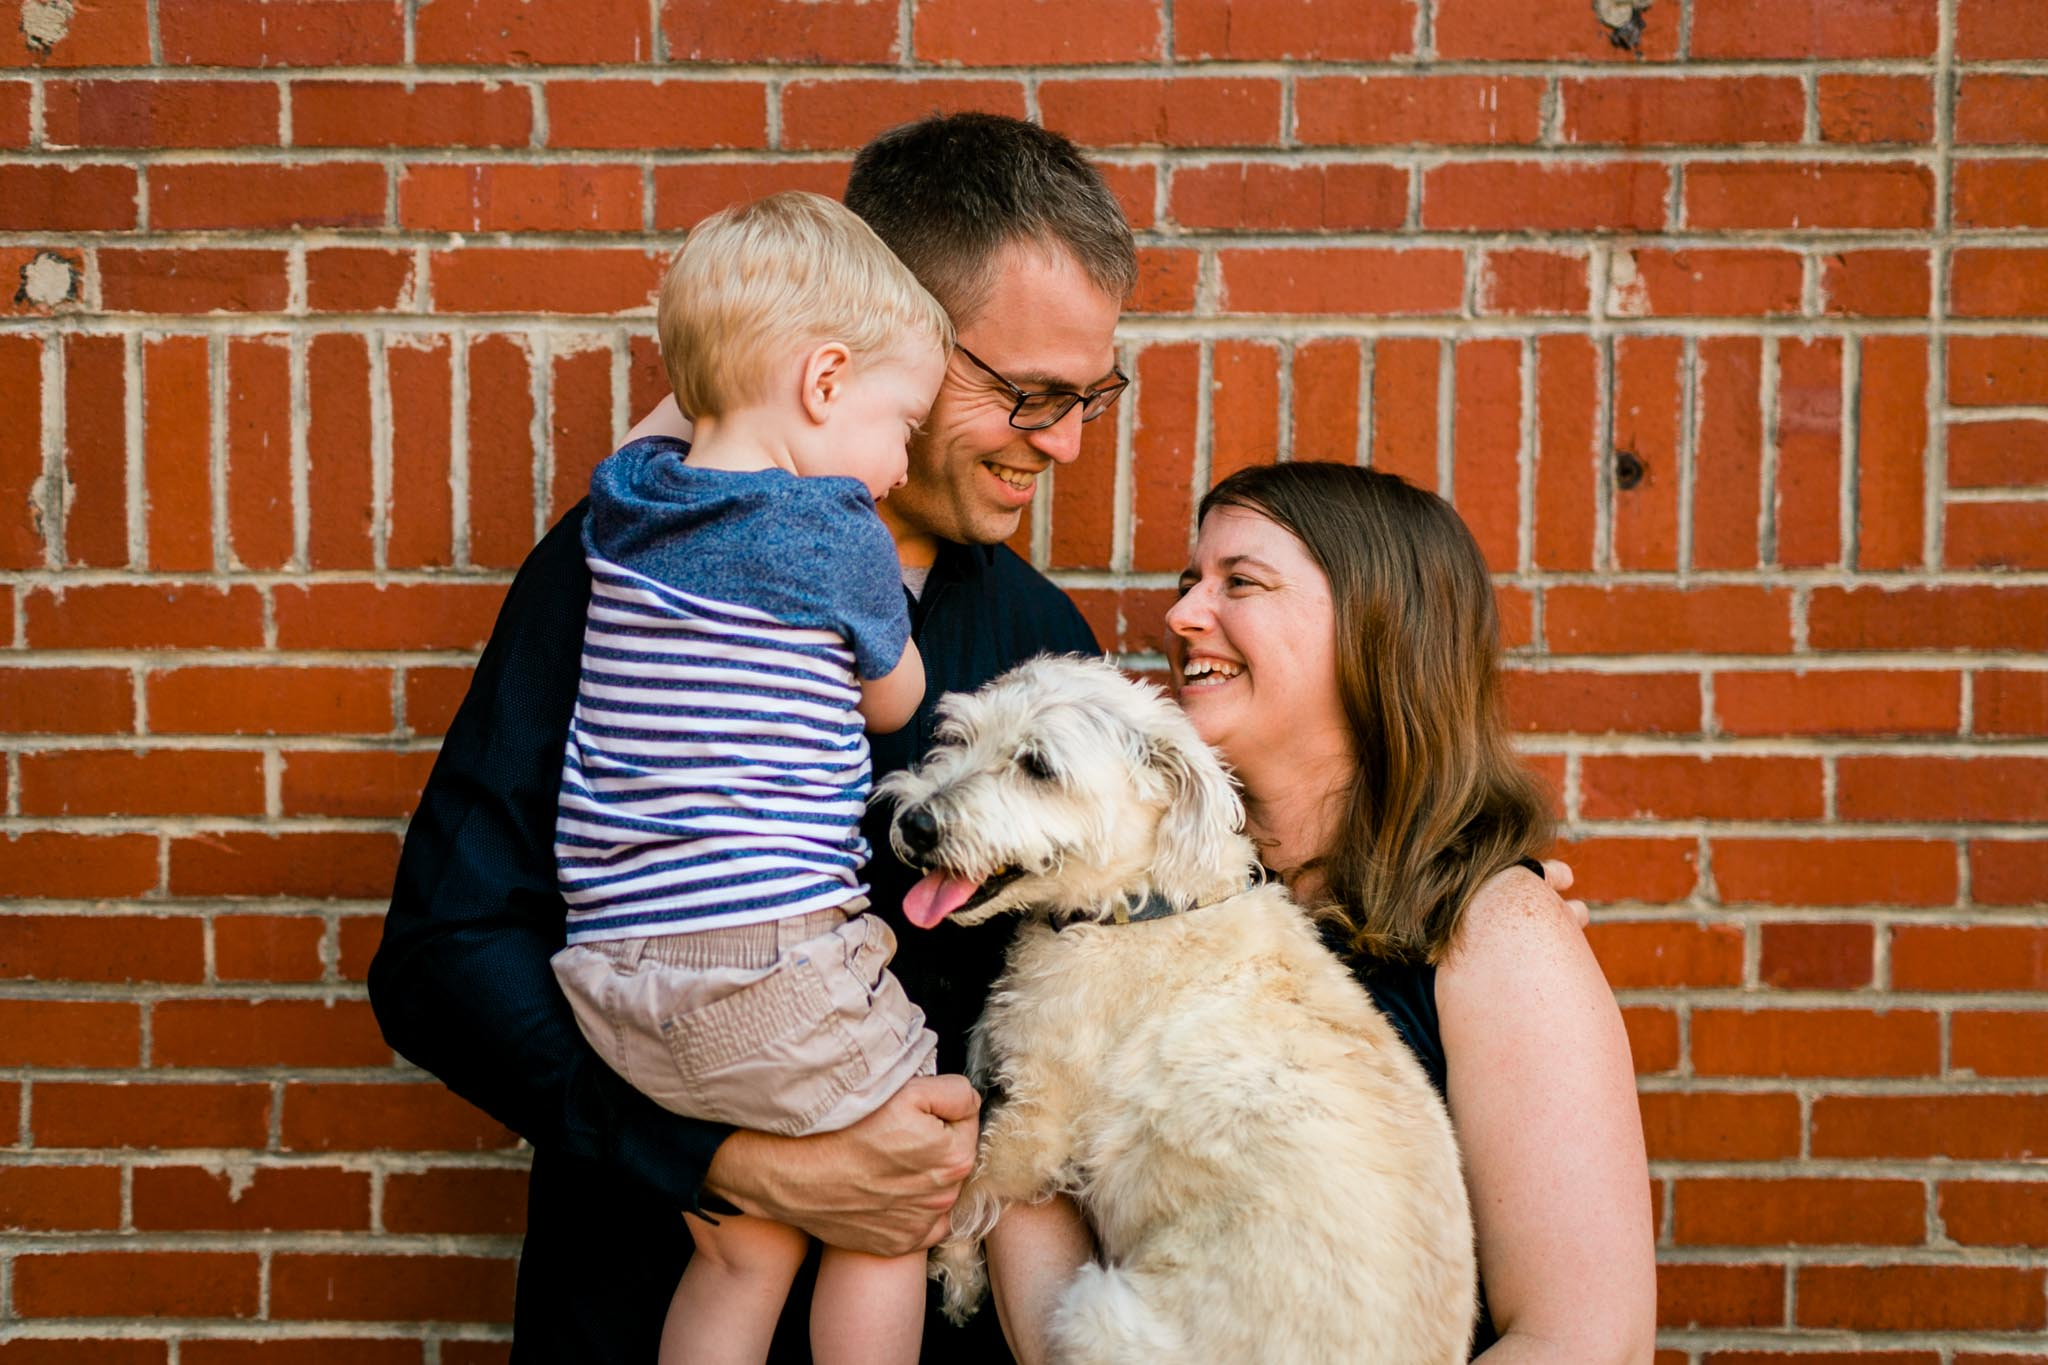 Durham Family Photographer   By G. Lin Photography   Outdoor family portrait at American Tobacco Campus